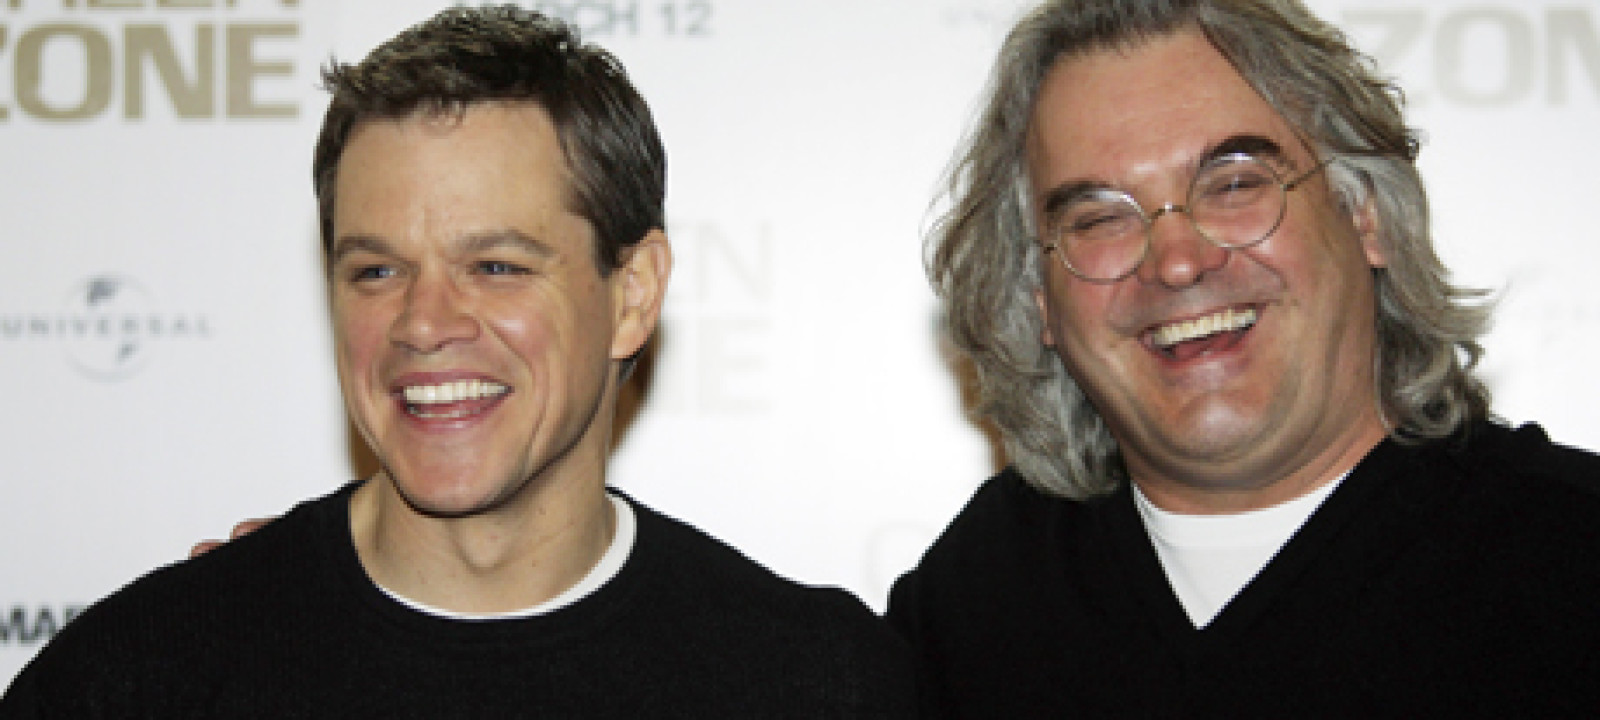 Matt Damon, Paul Greengrass